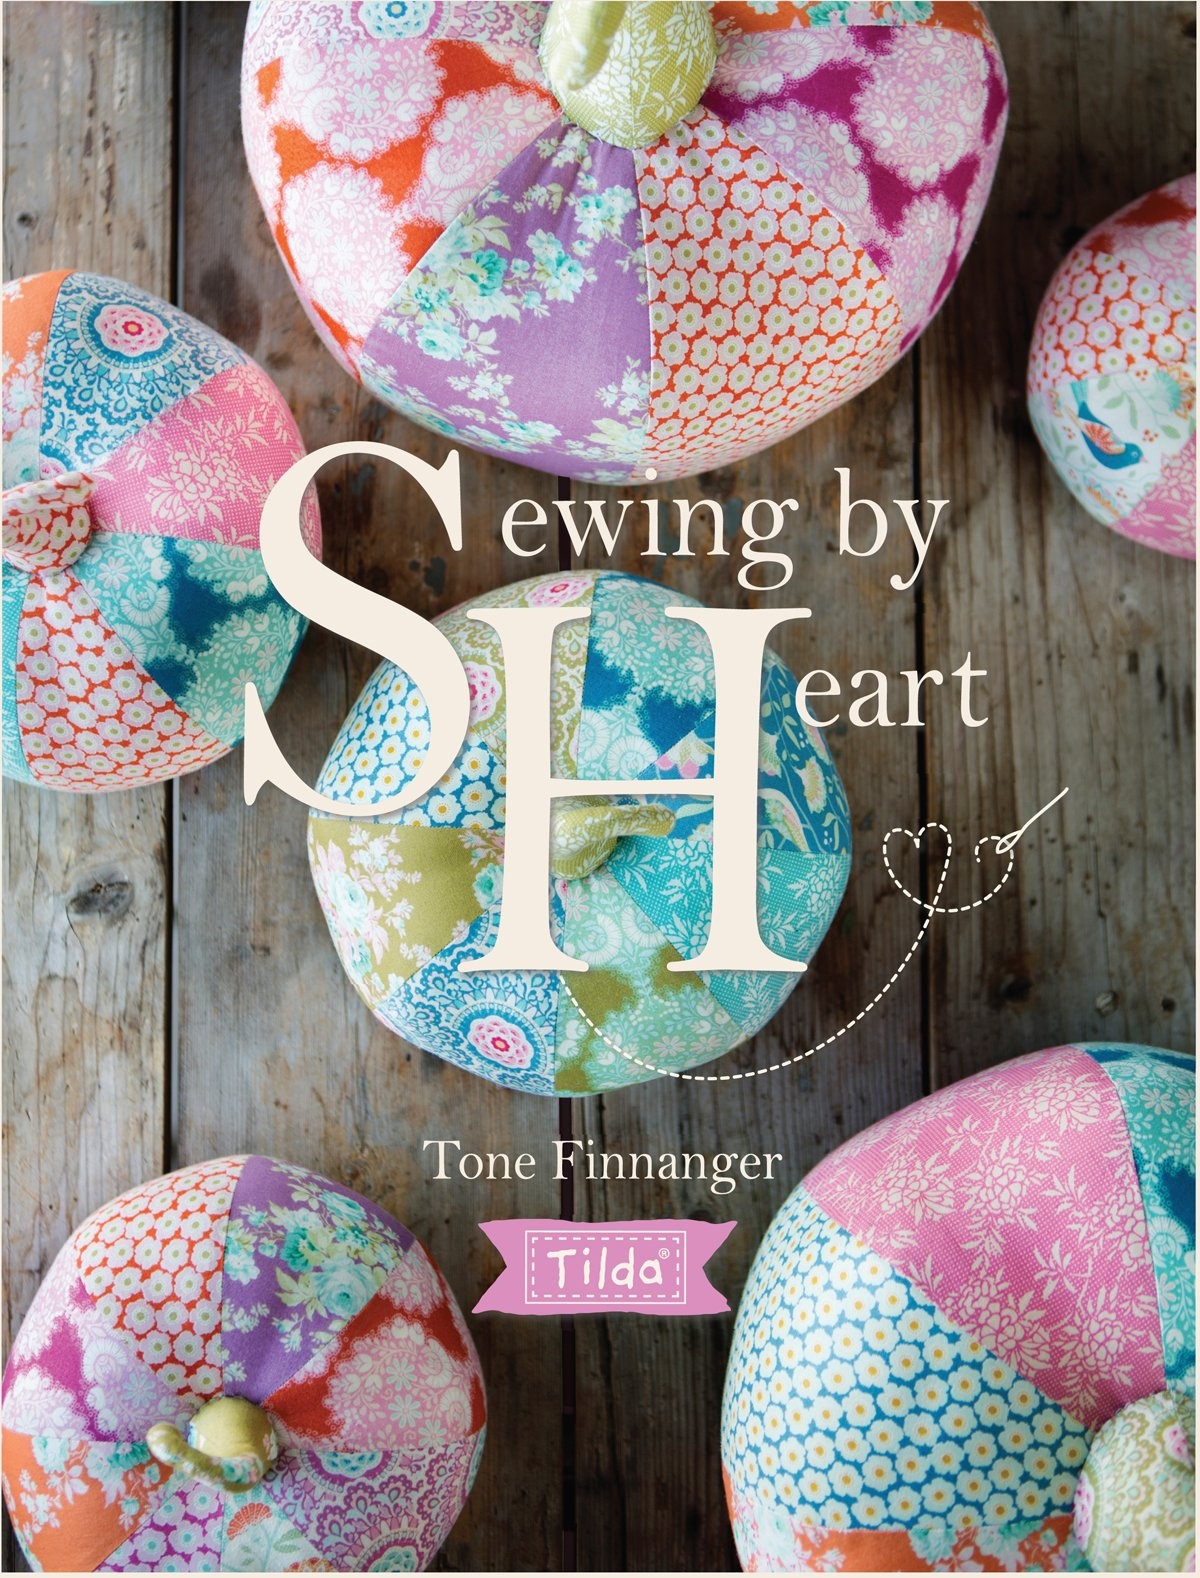 Tilda Sewing By Heart: For the love of fabrics by Tone Finnanger, ISBN: 9781446306710